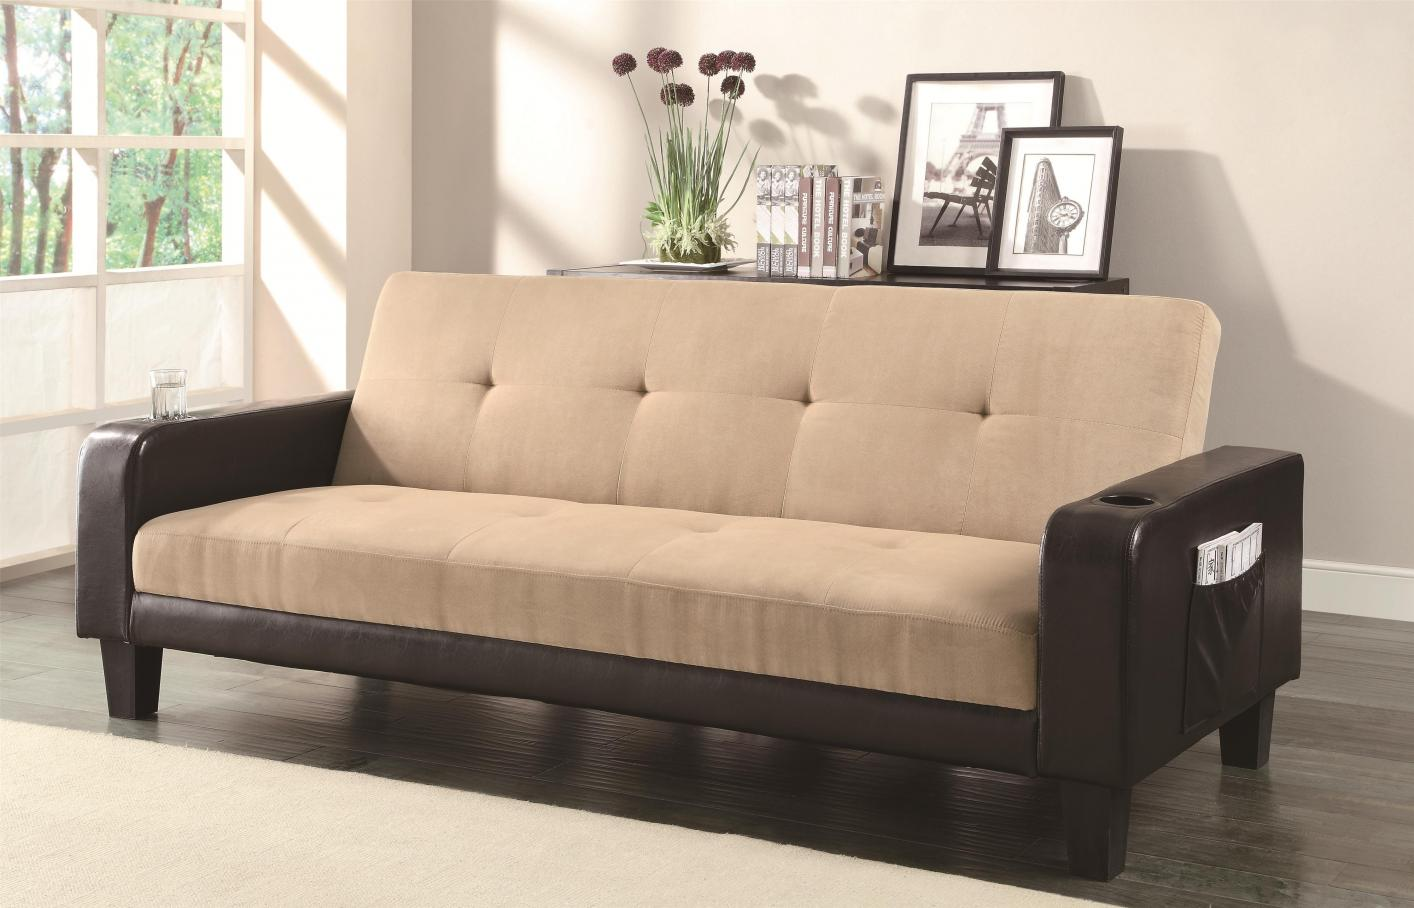 Beige Leather Sofa Bed Steal A Sofa Furniture Outlet Los